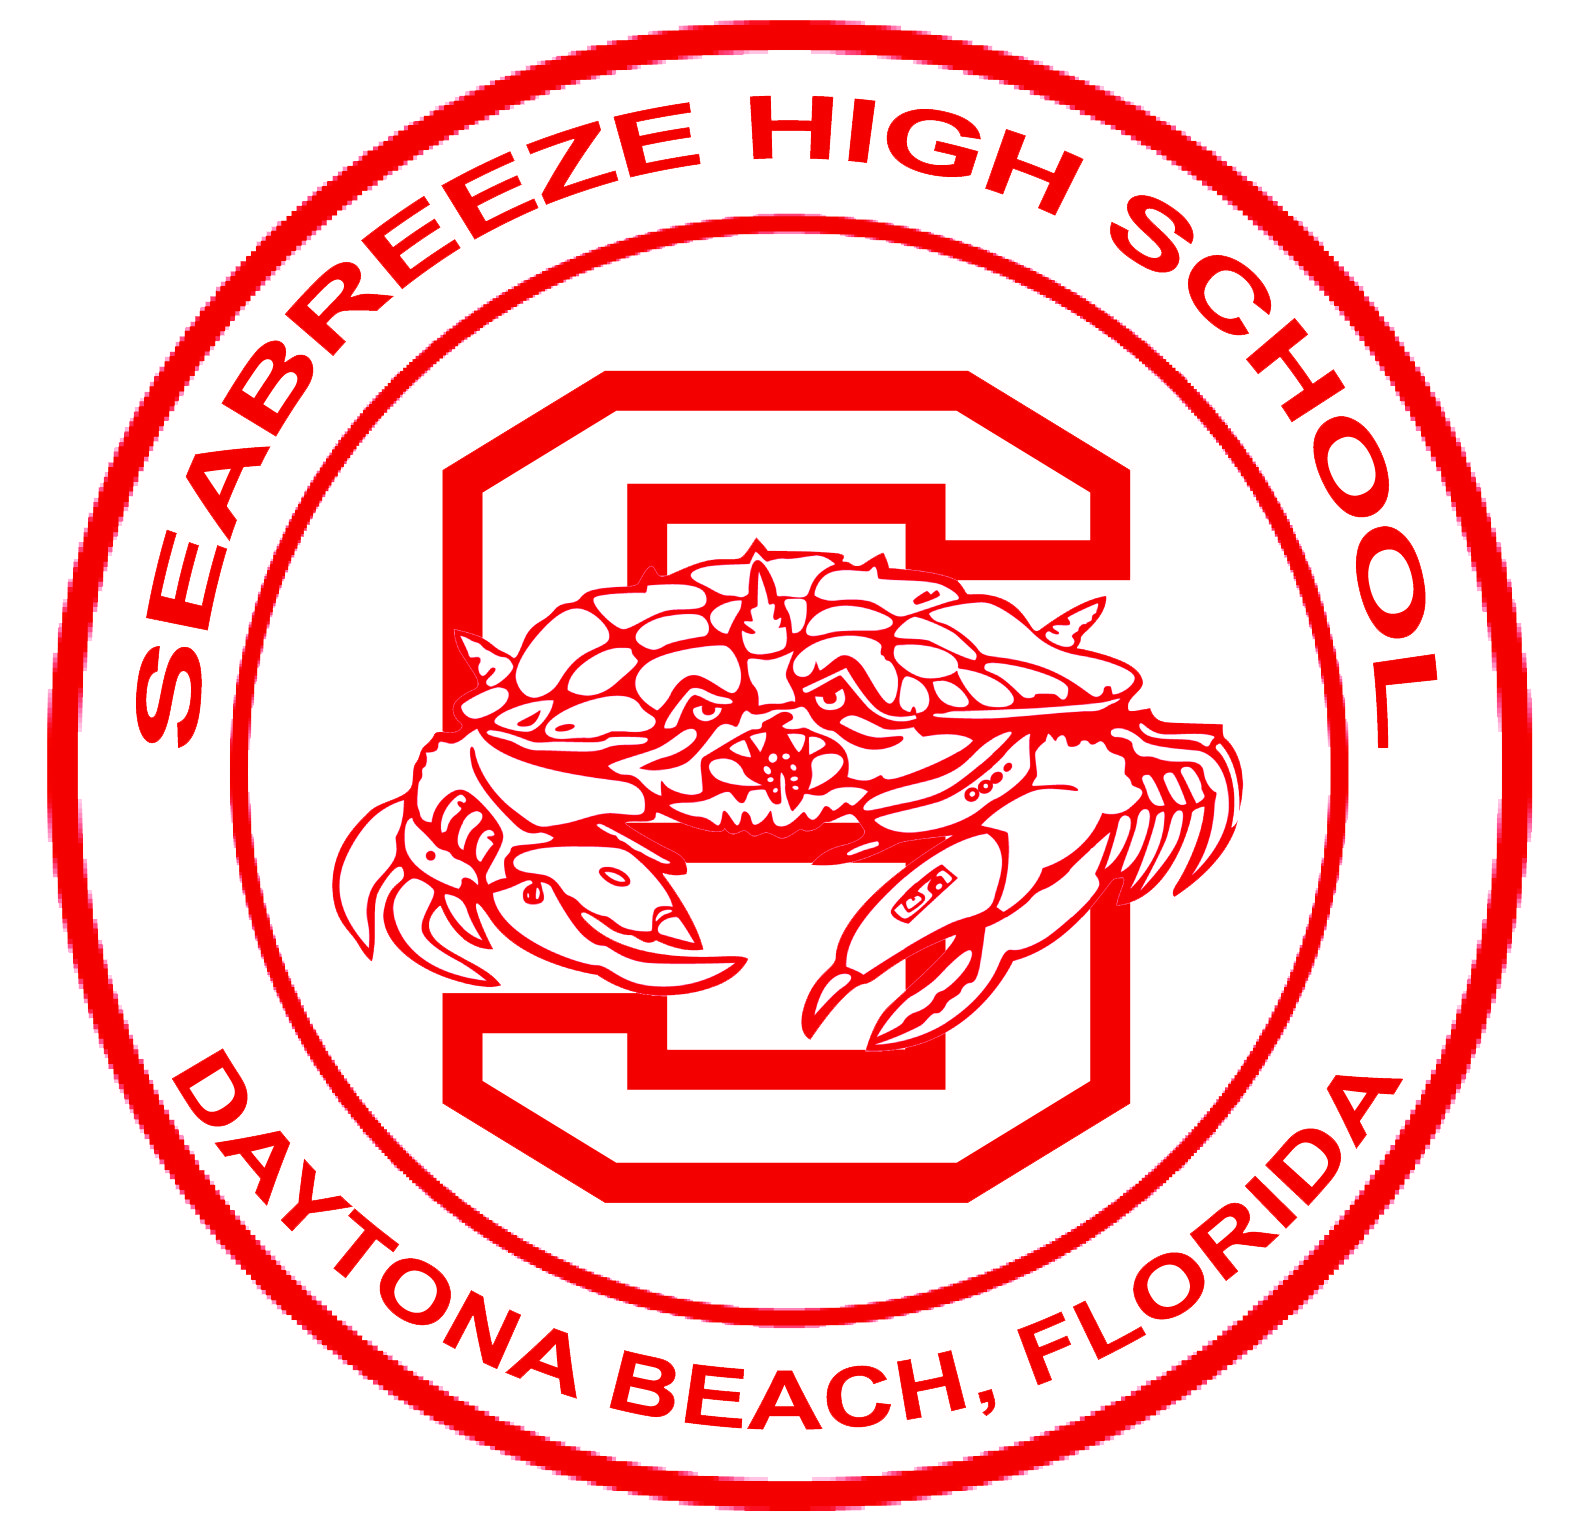 Seabreeze Circle Logo